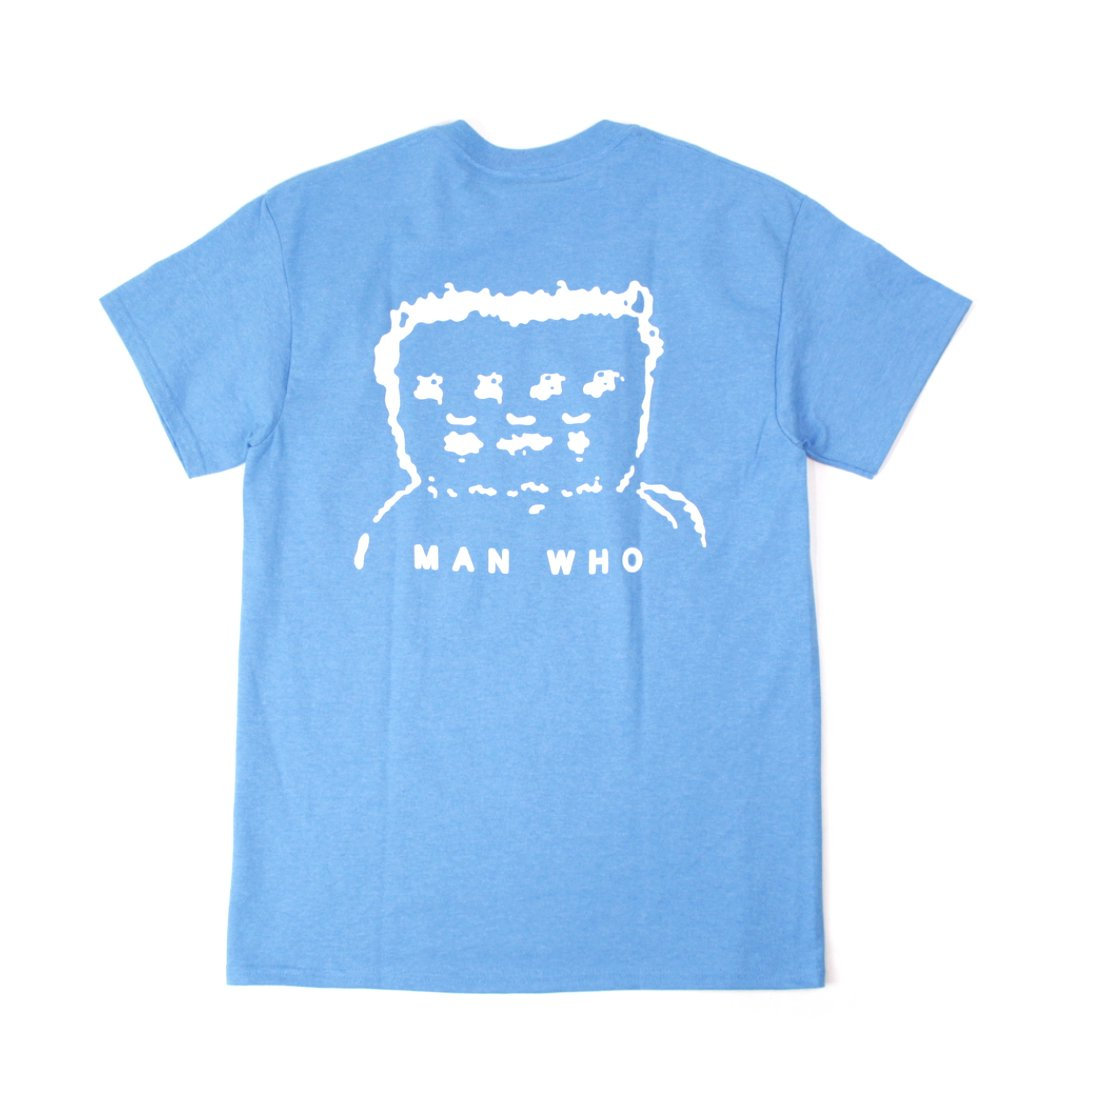 【MAN WHO】Man Who Tee - Heather Sapphire